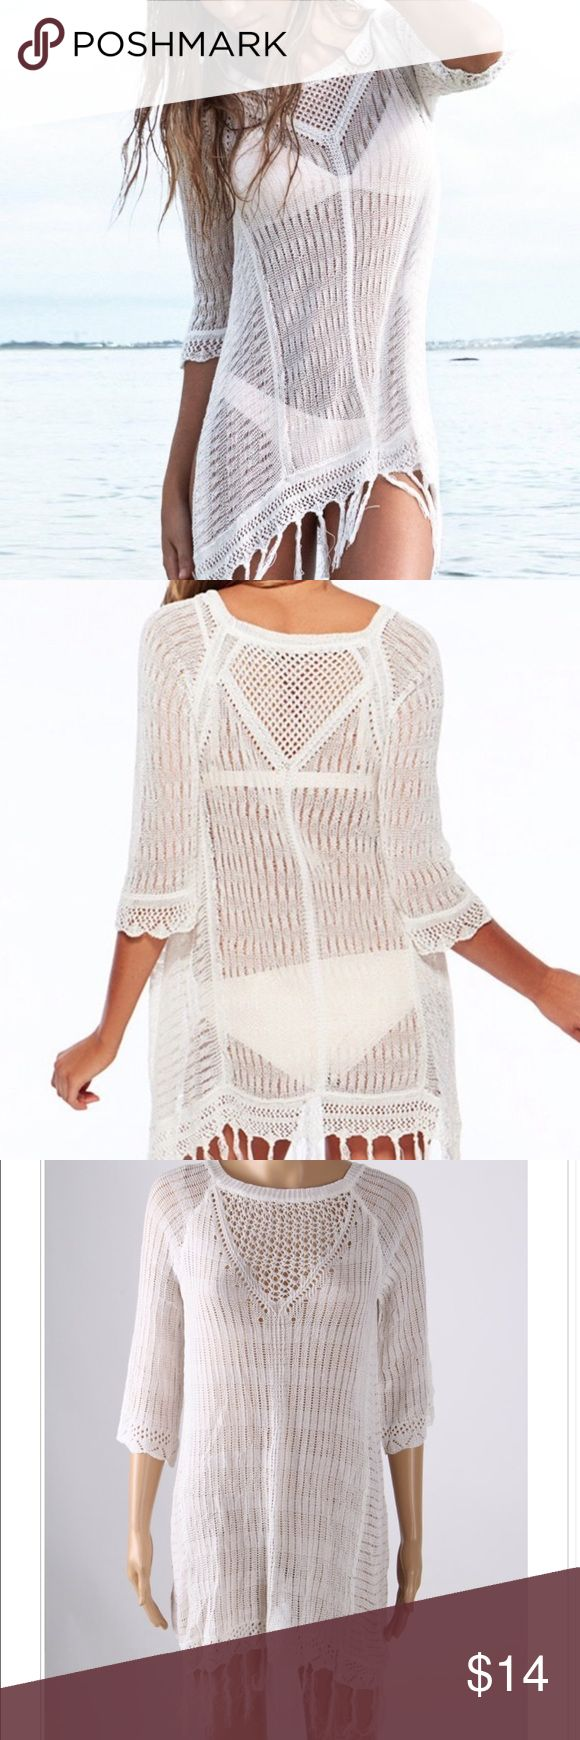 *Sample Sale* Knitted Fringe Swimsuit Cover Size M Fits Women US Size 2-8 or a XSmall/Small/Medium. Fringe is frayed as on photo. All of our showroom samples are brand new and unused. No tags. Swim Coverups